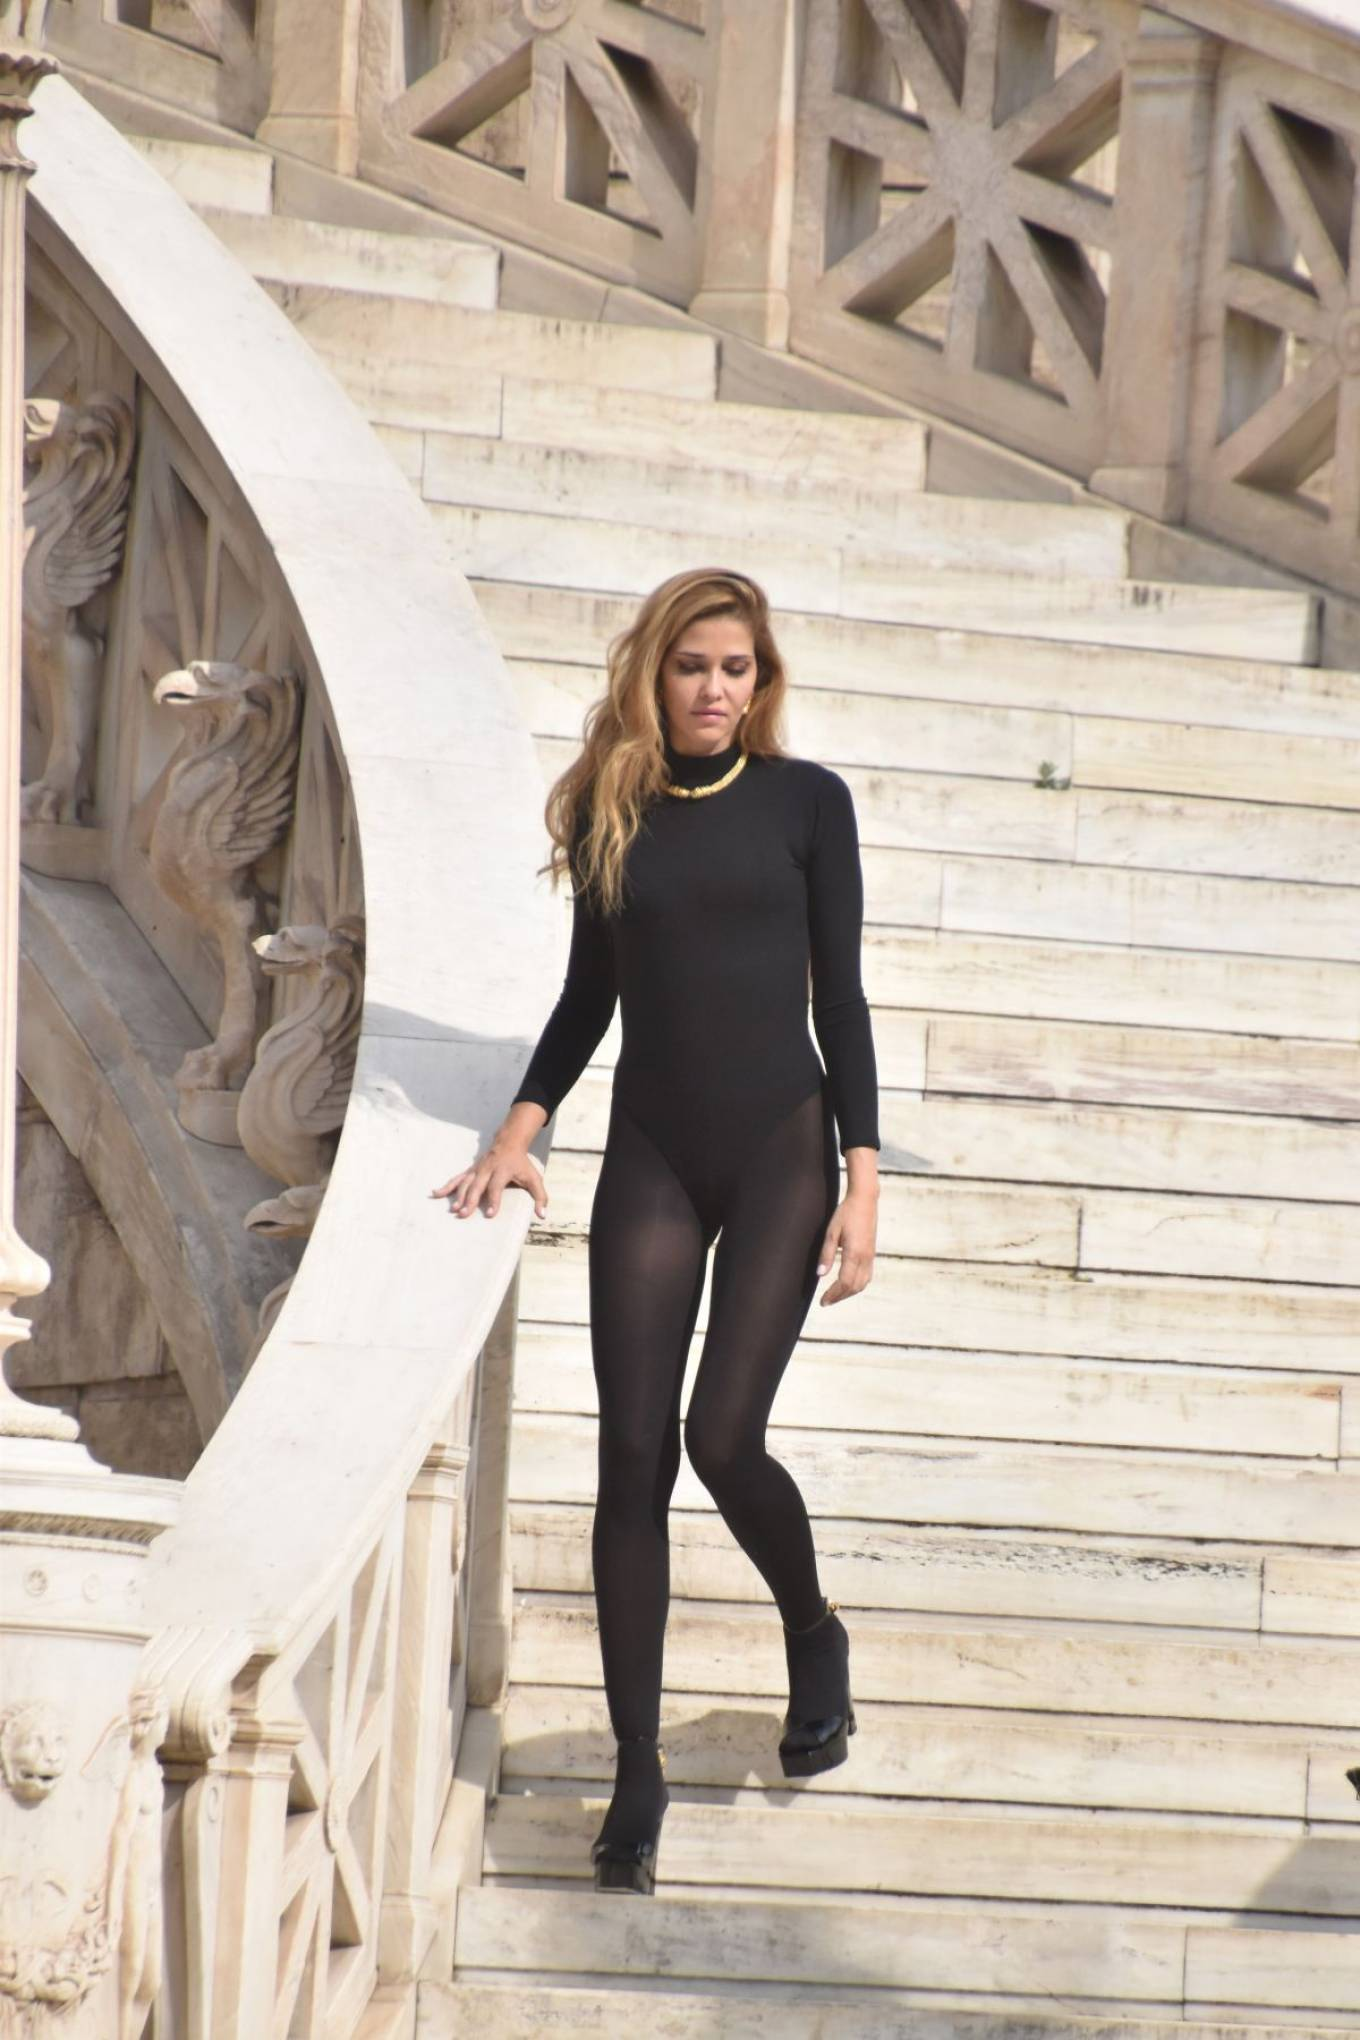 Ana Beatriz Barros - Photoshoot candids in Athens